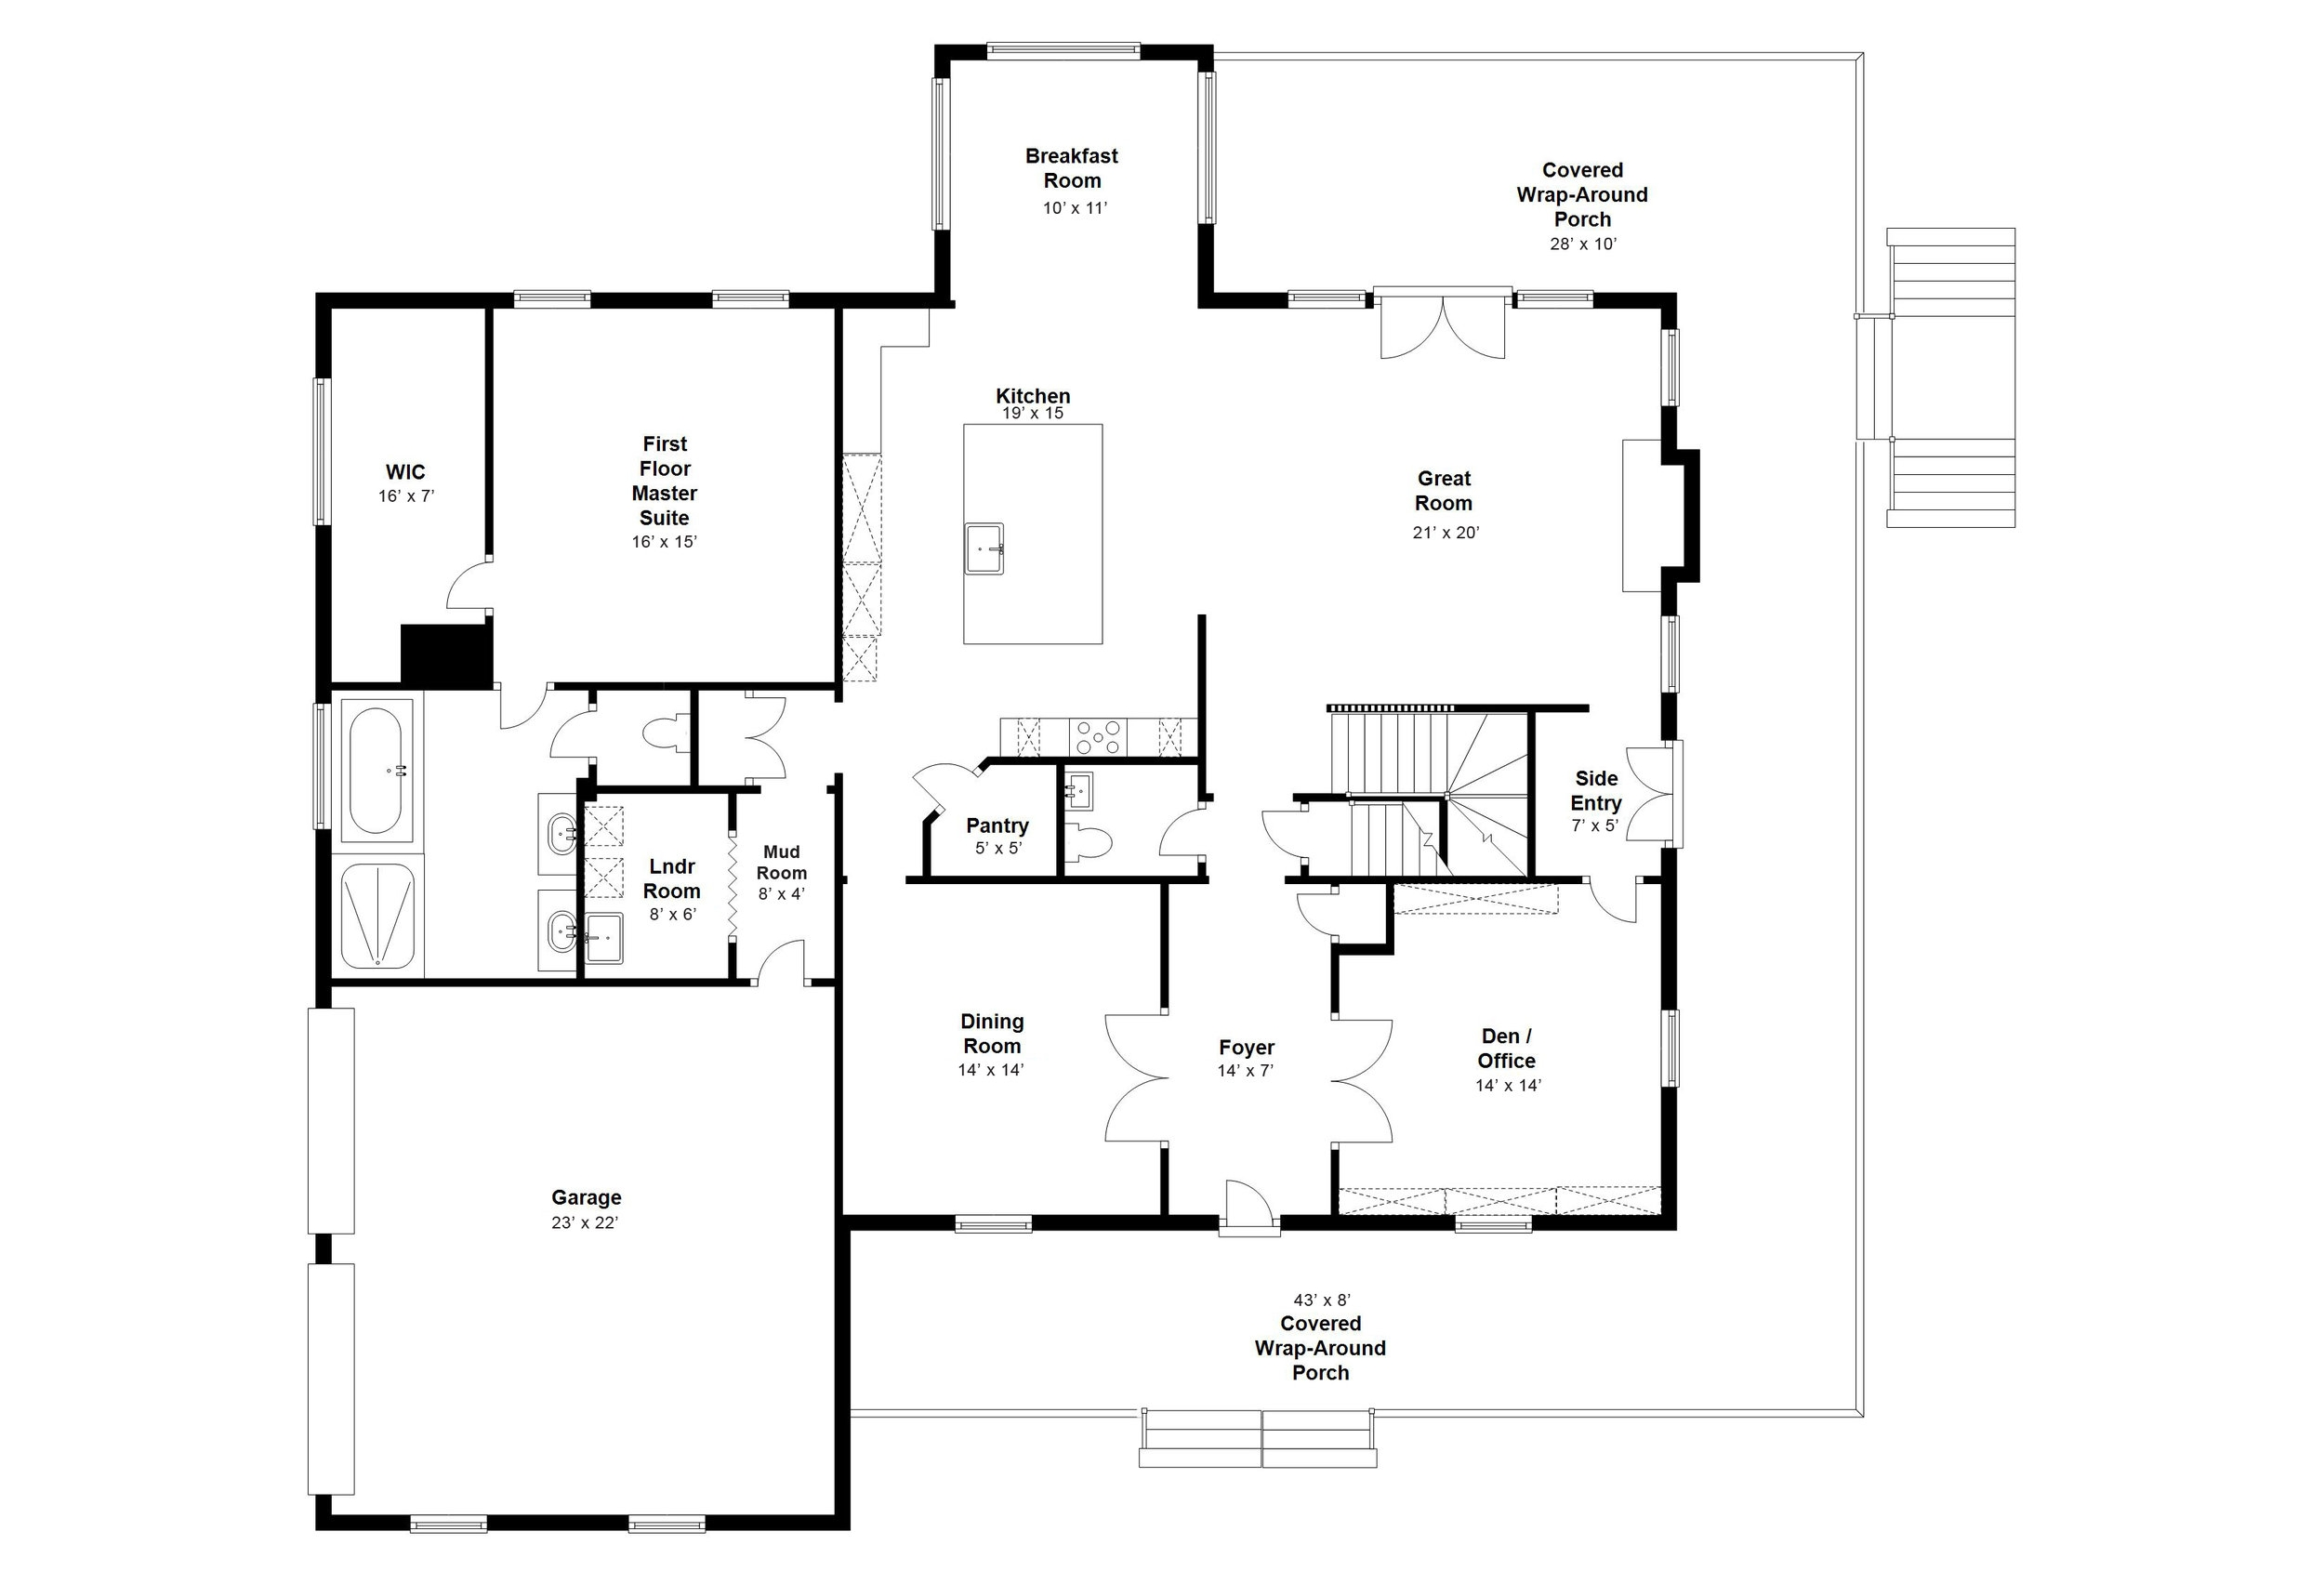 floor-plan-sample-2.jpg